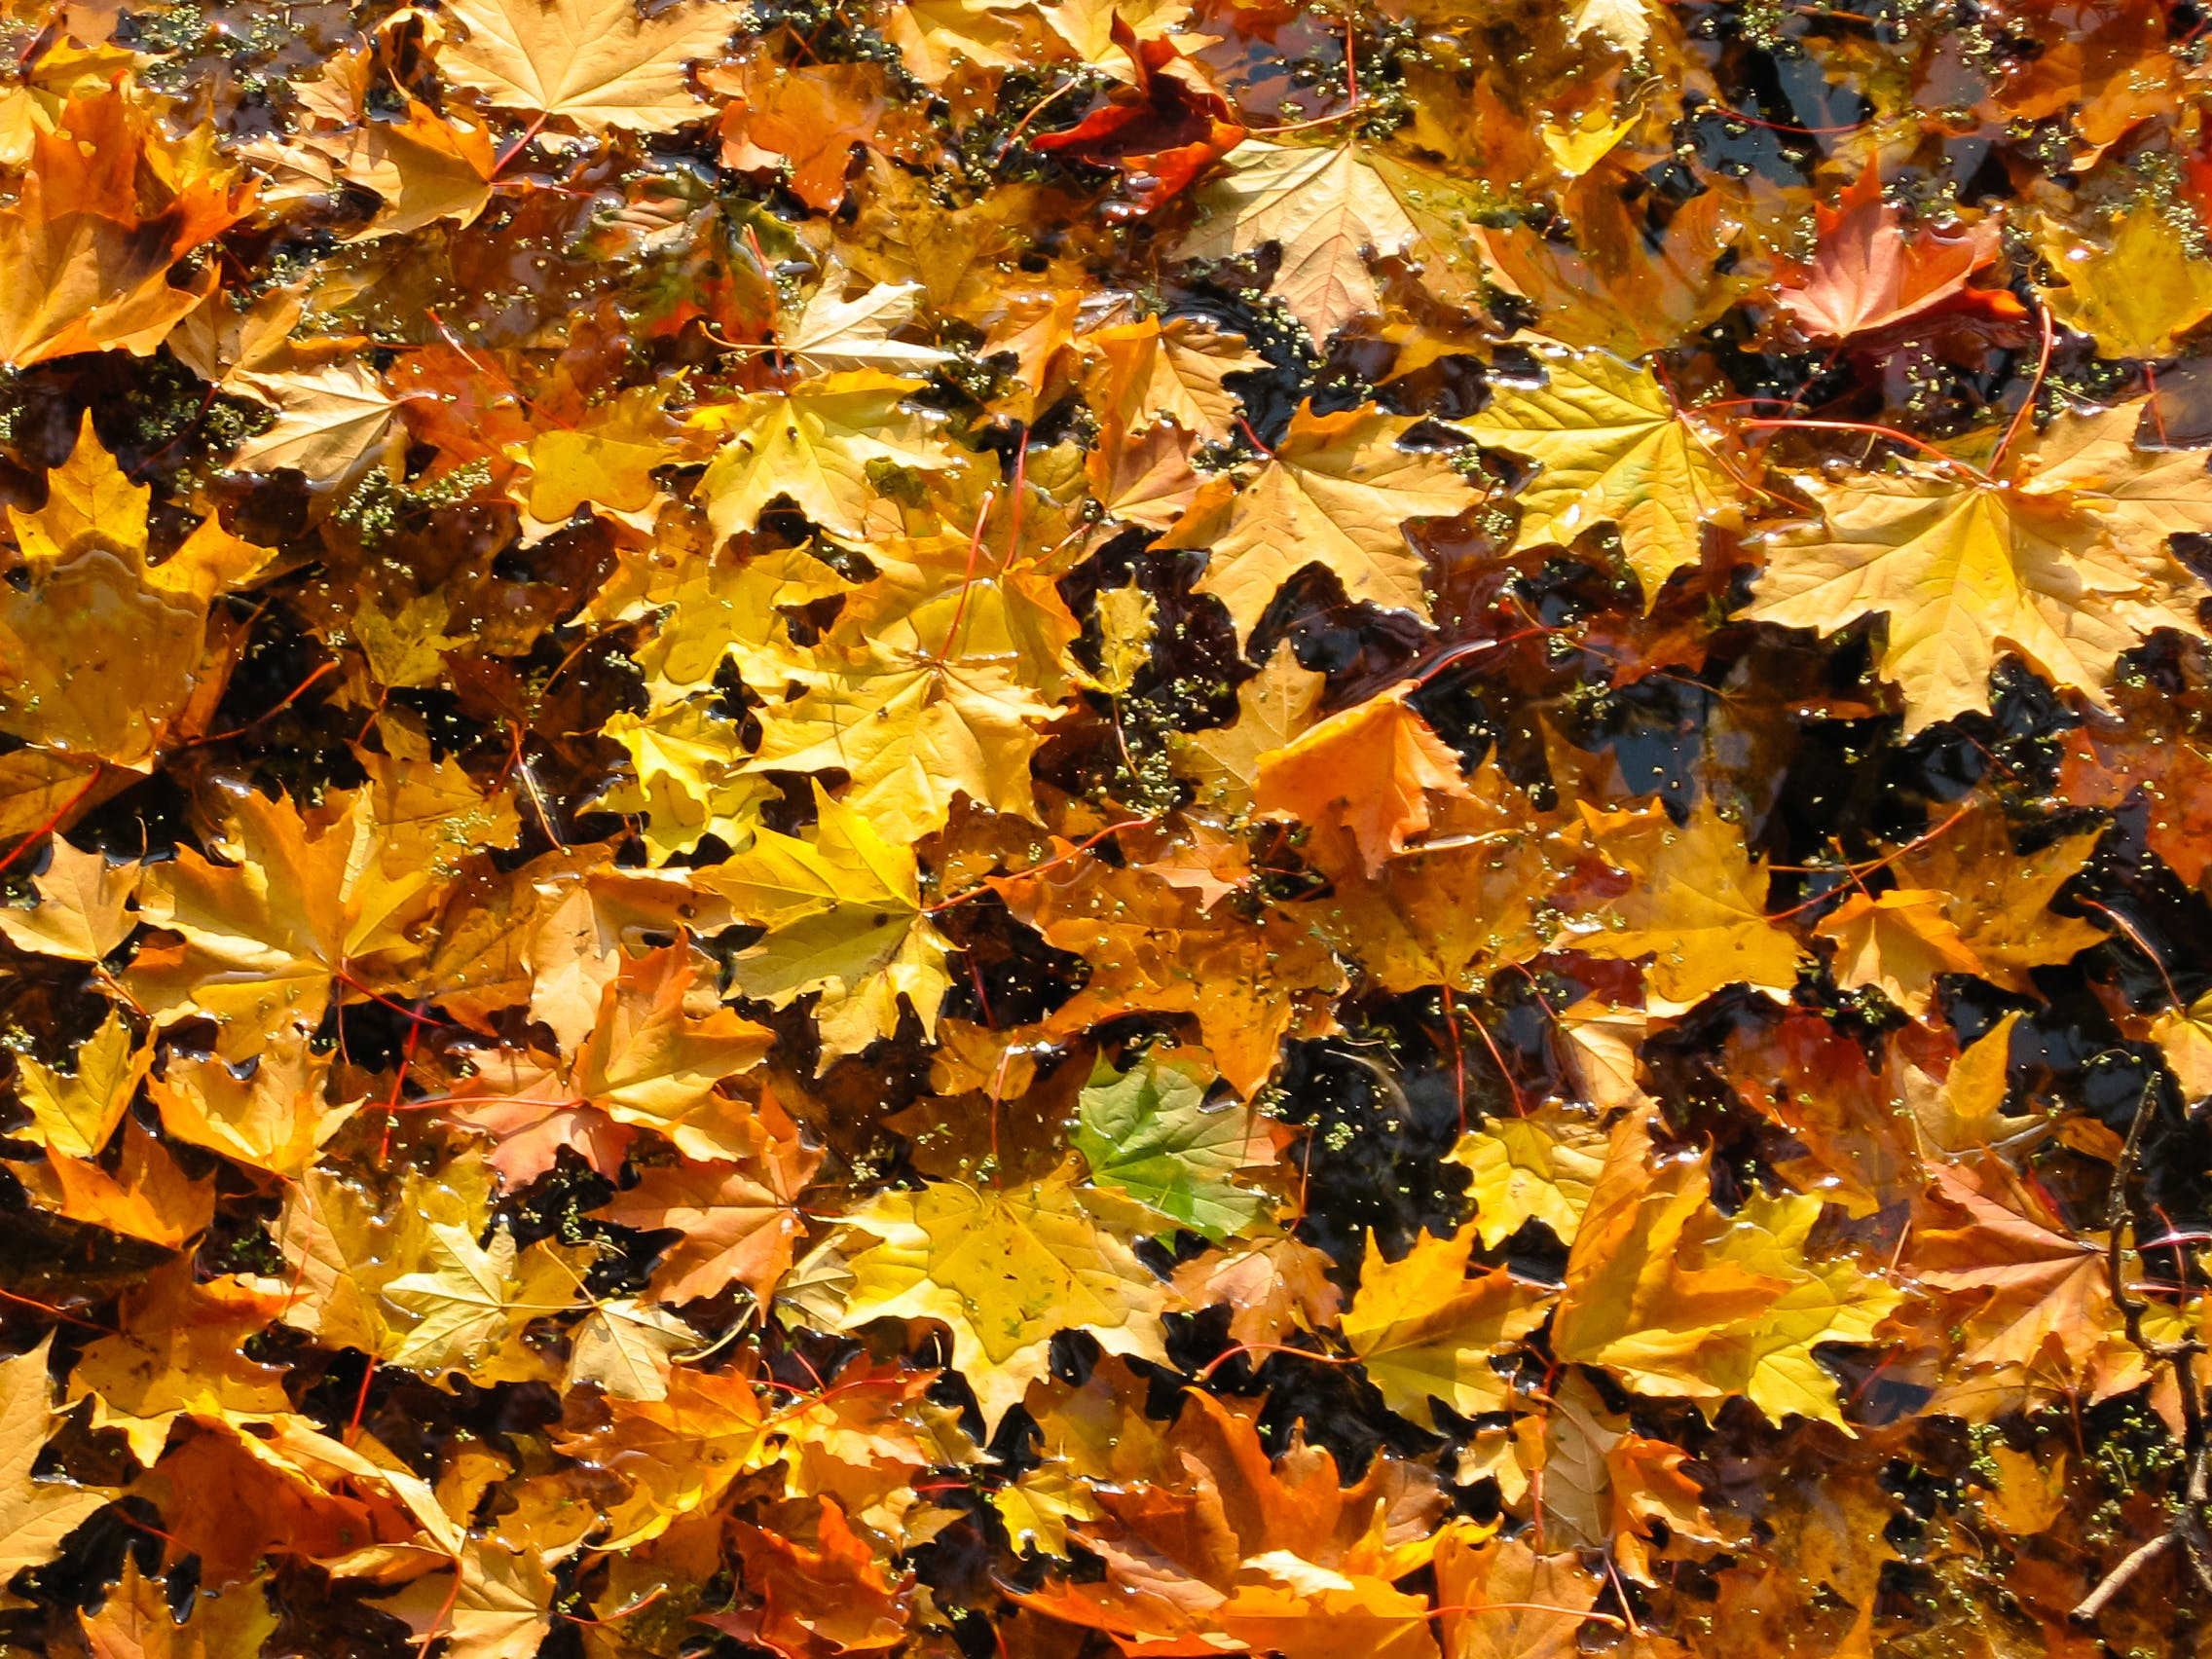 Free stock photo of nature, leaves, ground, autumn